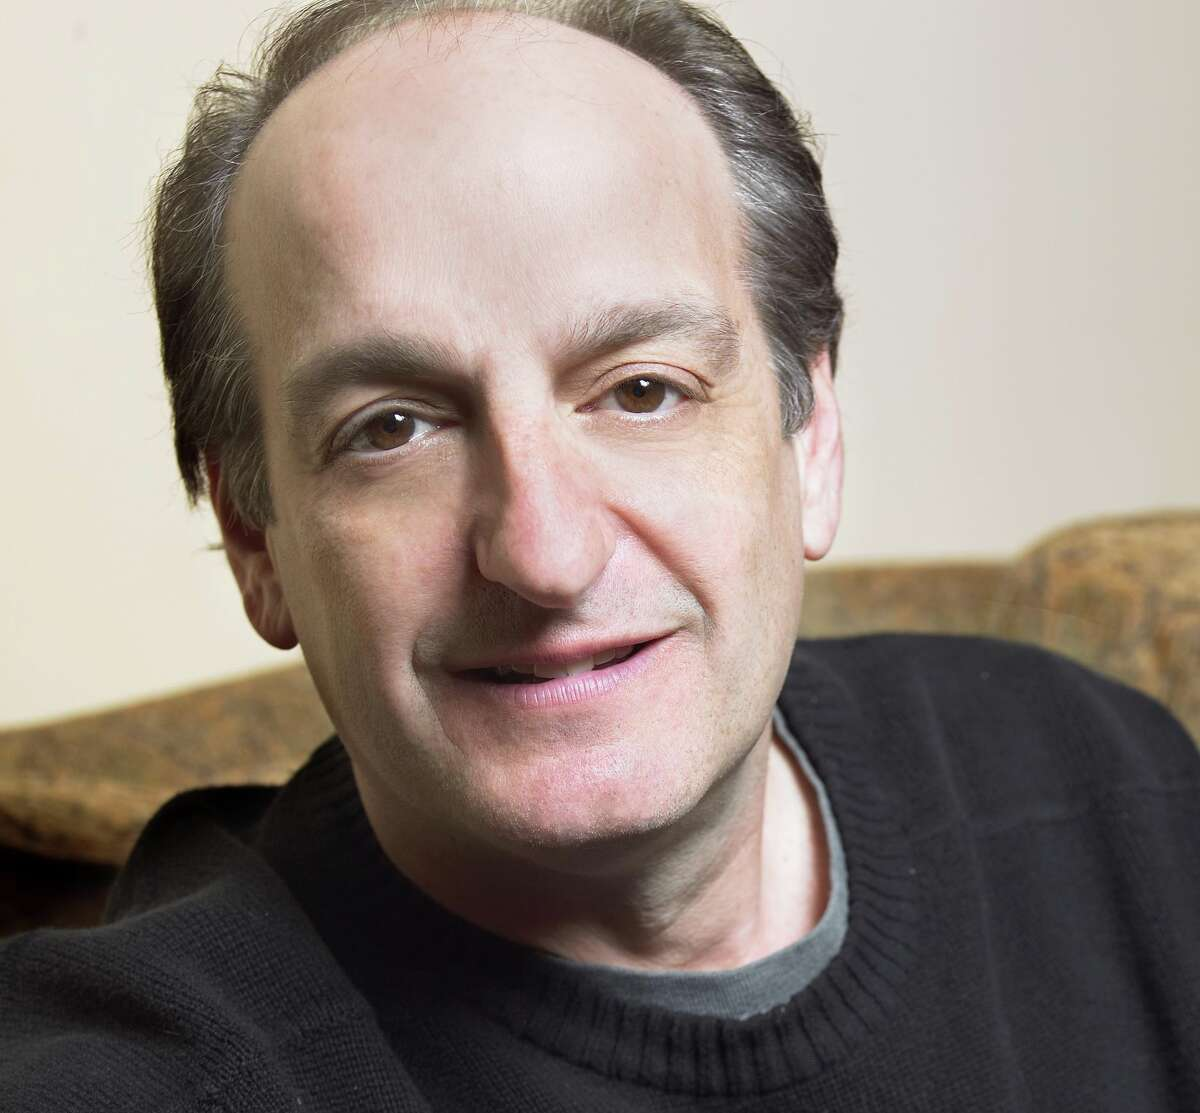 """David Paymer, who earned an Oscar nomination for playing the brother of Billy Crystal's character in the 1992 movie """"Mr. Saturday Night,"""" will reprise the role opposite Crystal in a new musical adaptation of the movie being workshopped at Barrington Stage Company in Pittsfield, Mass., from Oct, 23 to 30."""